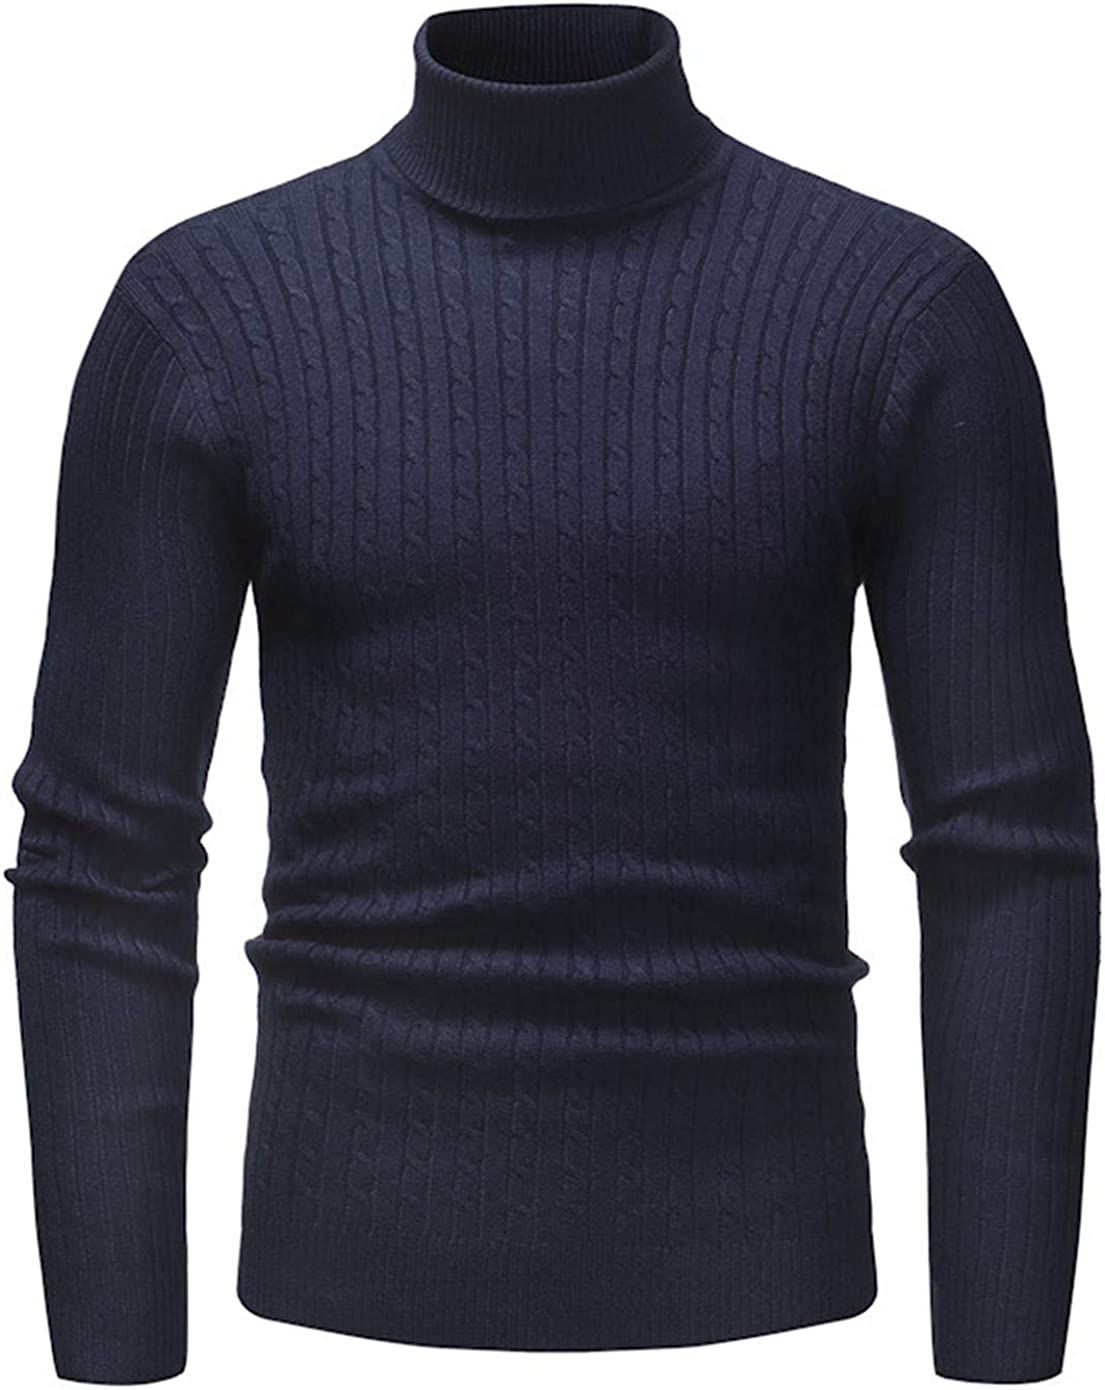 Soluo Mens Thermal Mock Turtleneck Long Sleeve T Shirt Knitted Pullover Basic Slim Fit Shirts Sweatshirt (Navy Blue,3X-Large)